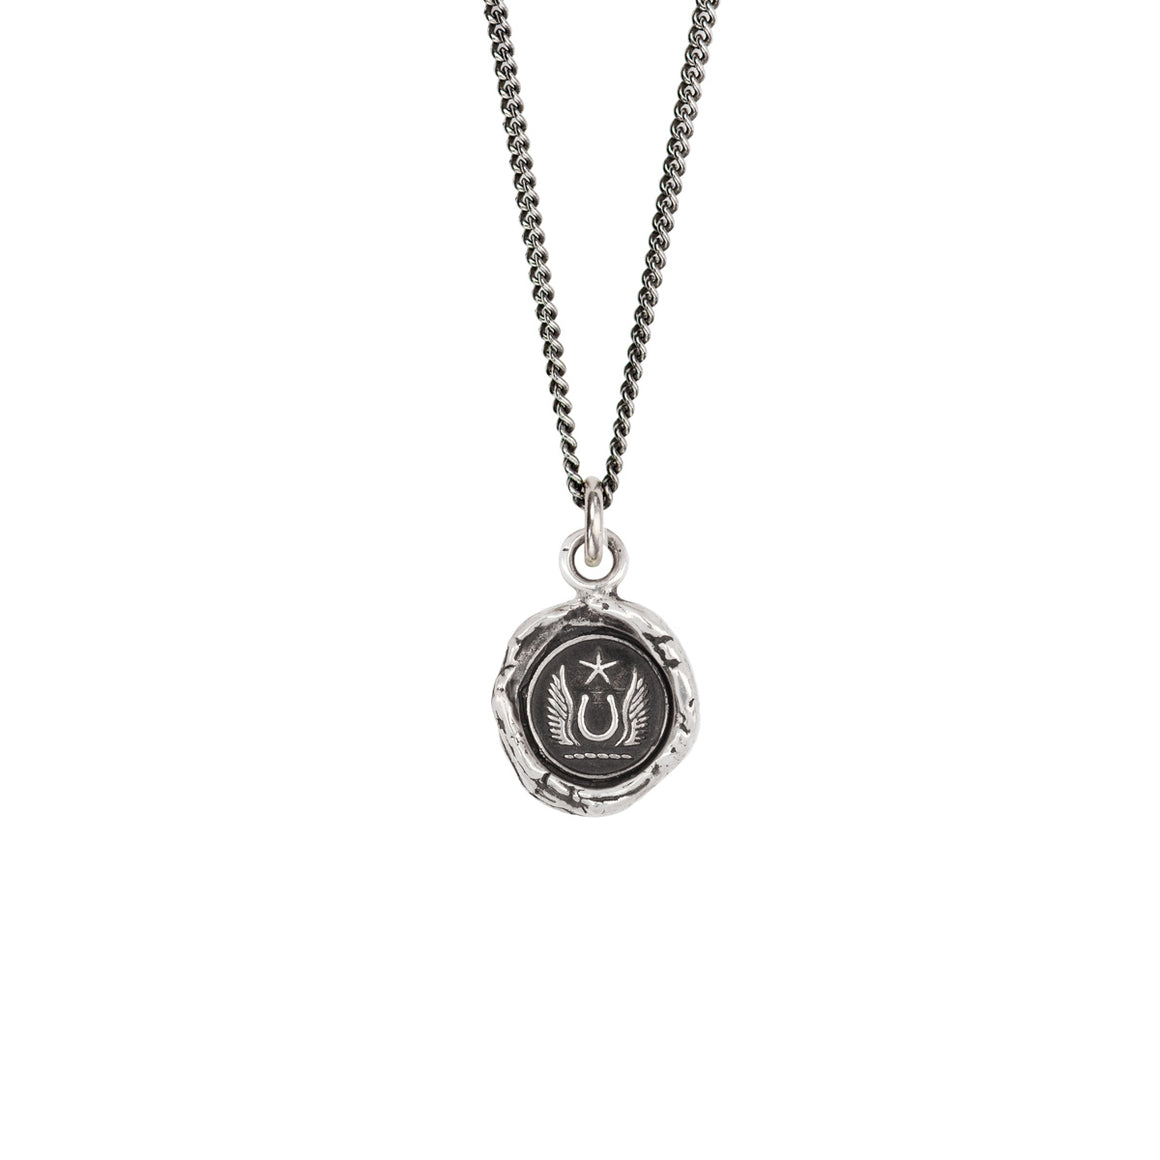 PYRRHA LUCK & PROTECTION TALISMAN NECKLACE